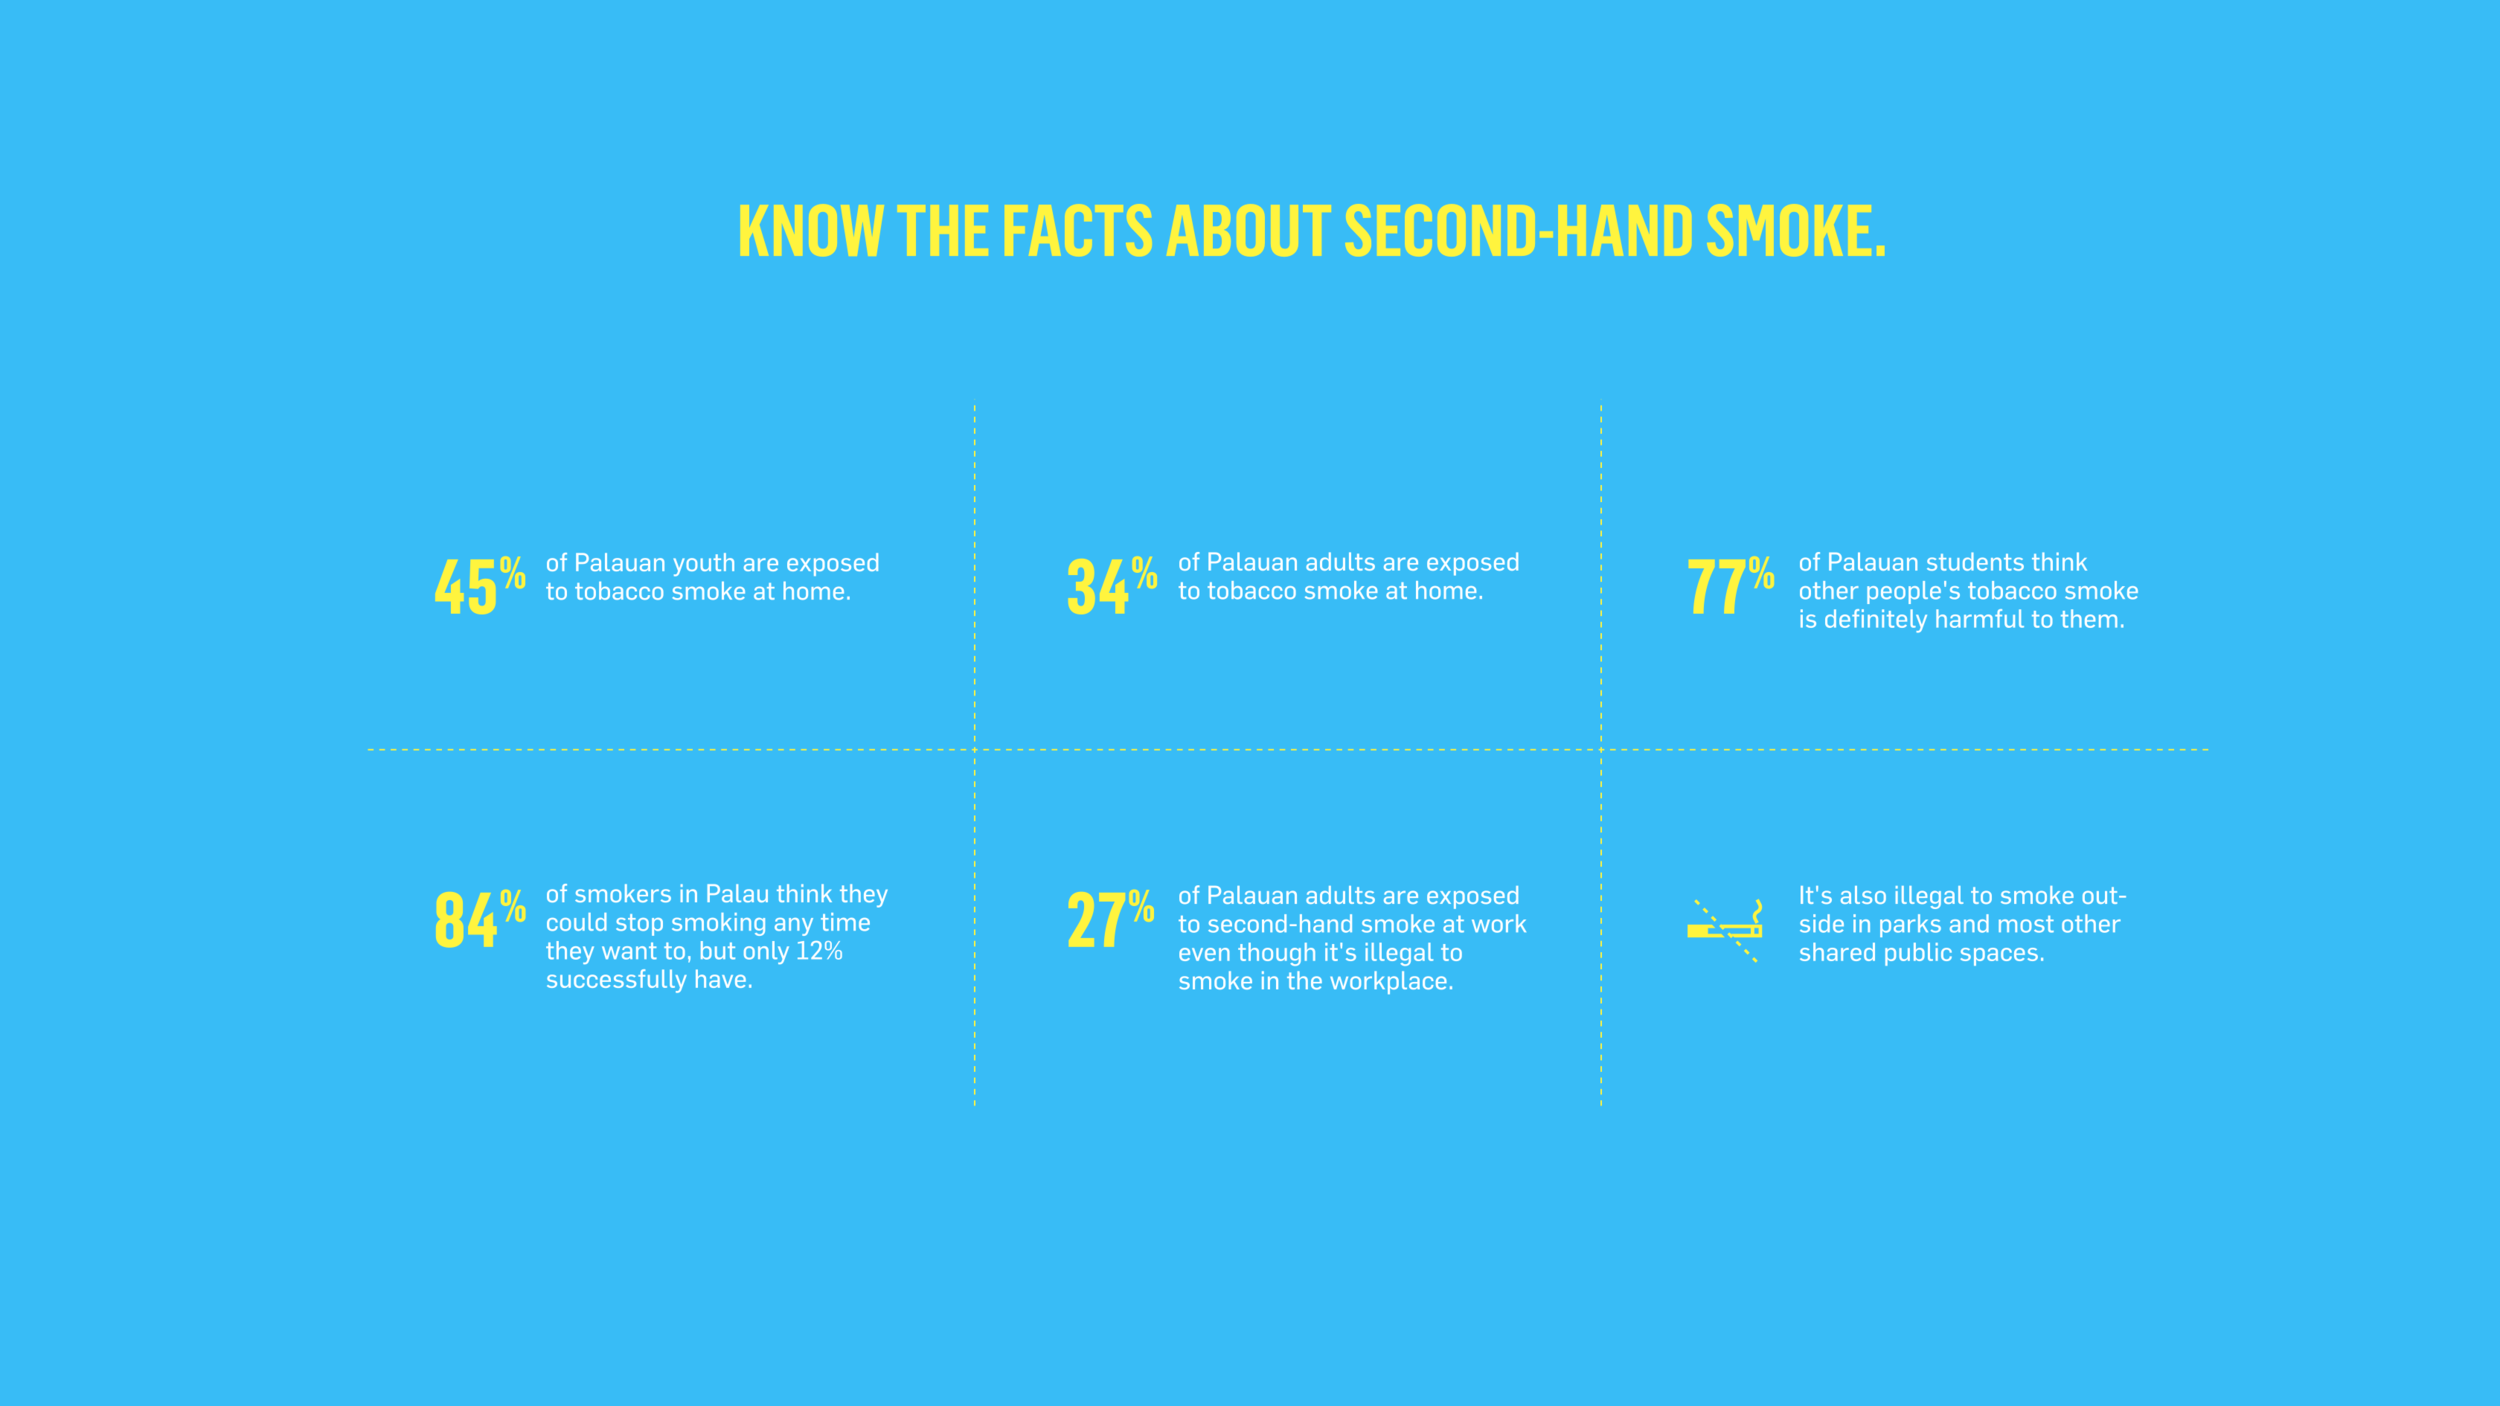 Second-hand smoke facts for Palau